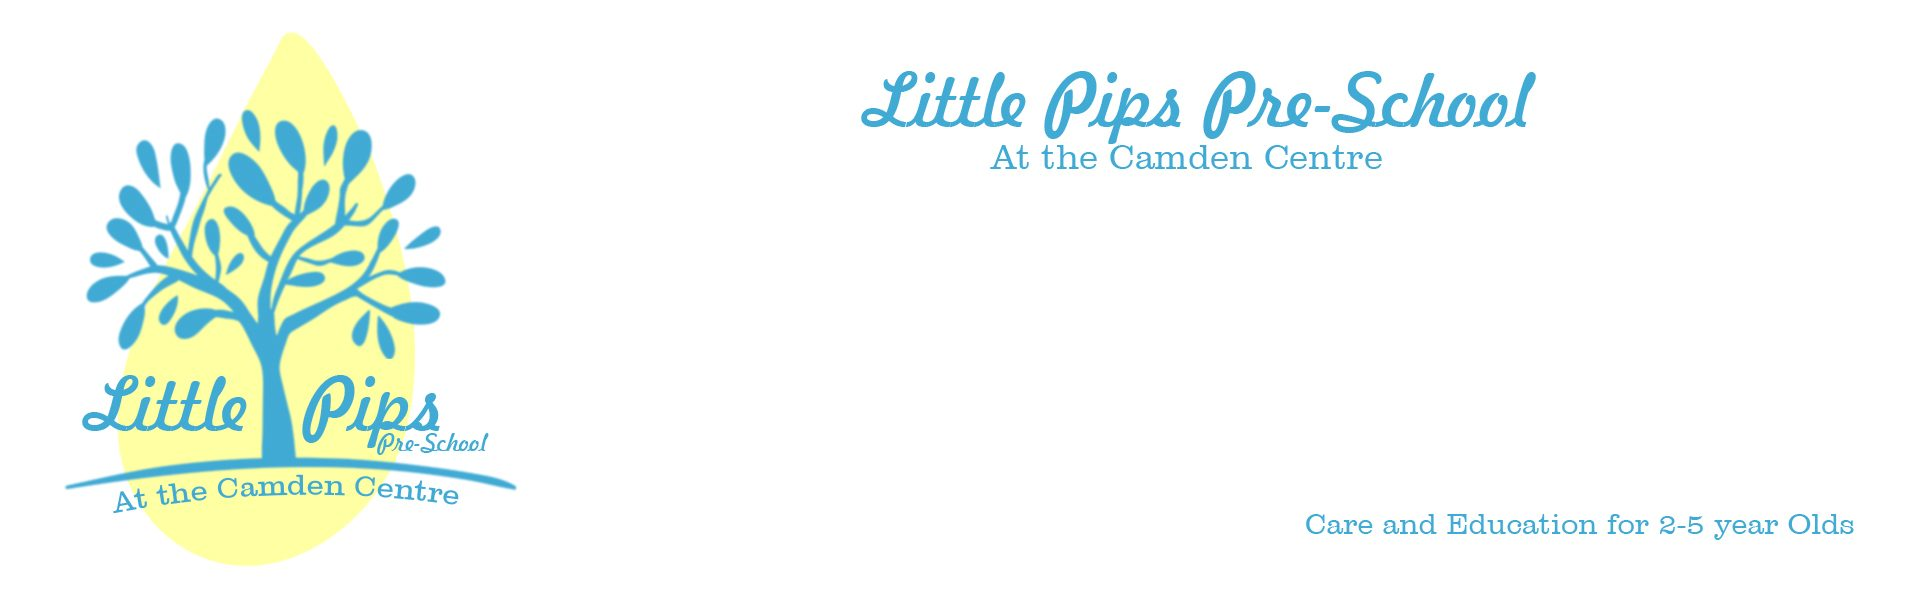 The Little Pips Pre-School at The Camden Centre